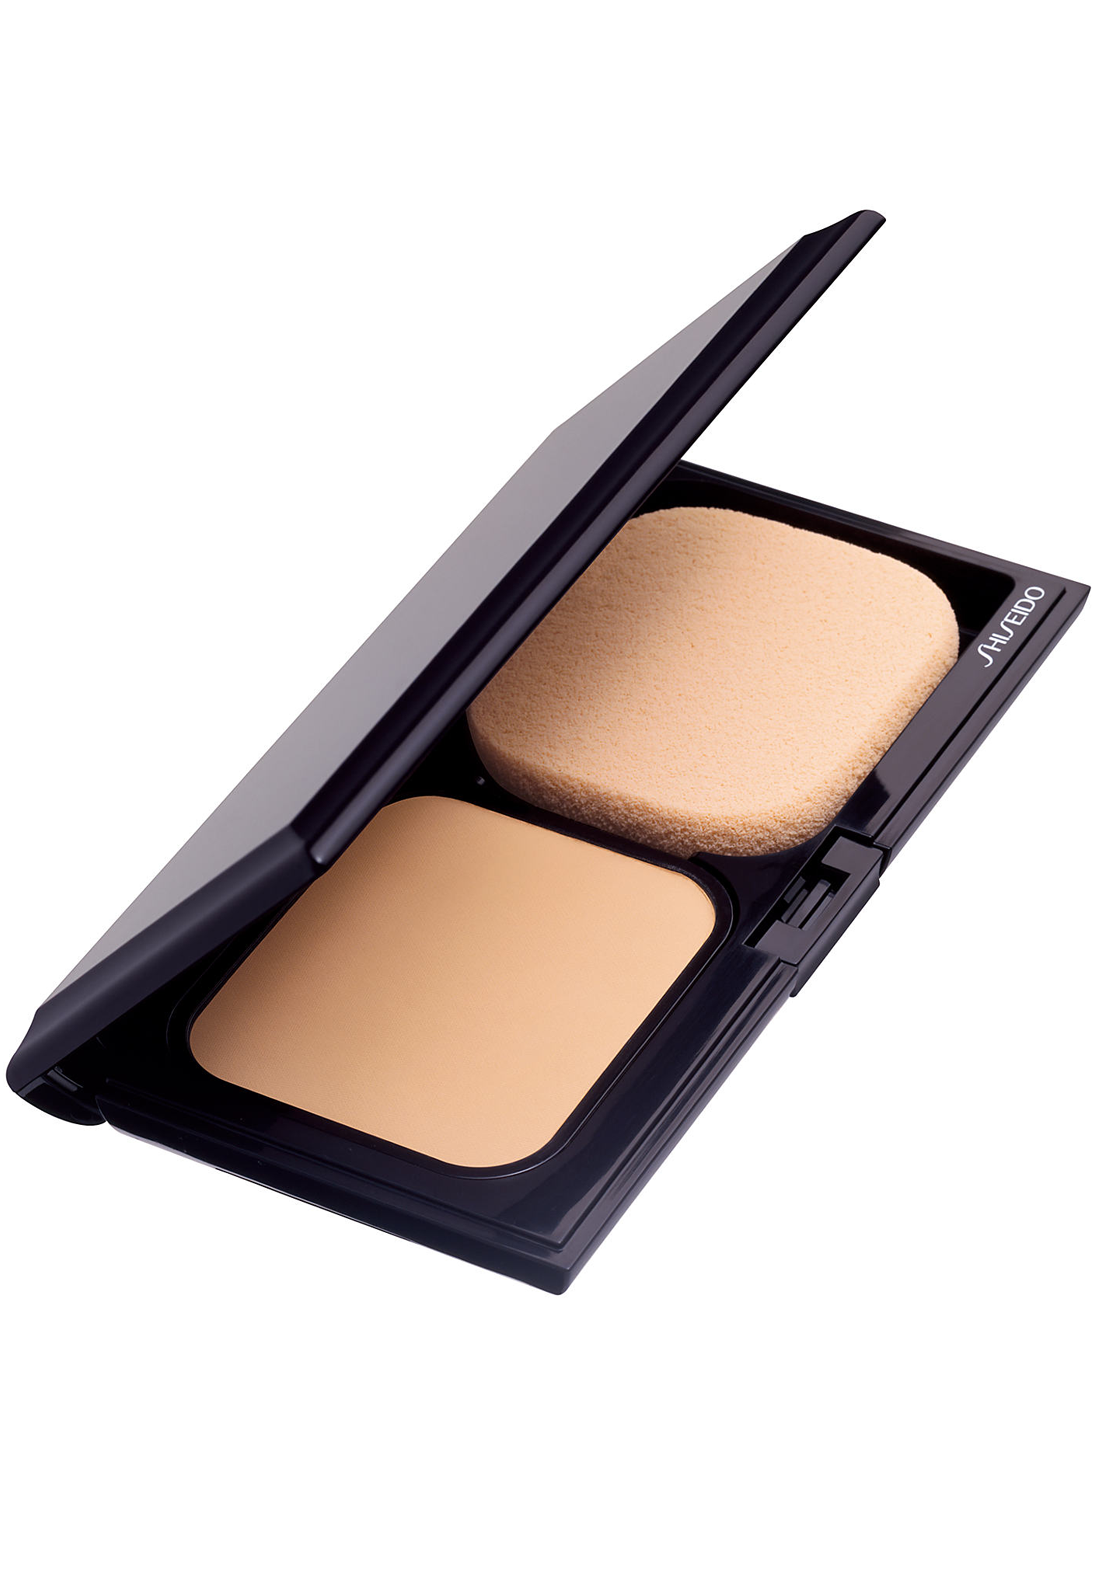 Shiseido Sheer and Perfect Compact, Natural Fair Beige B40